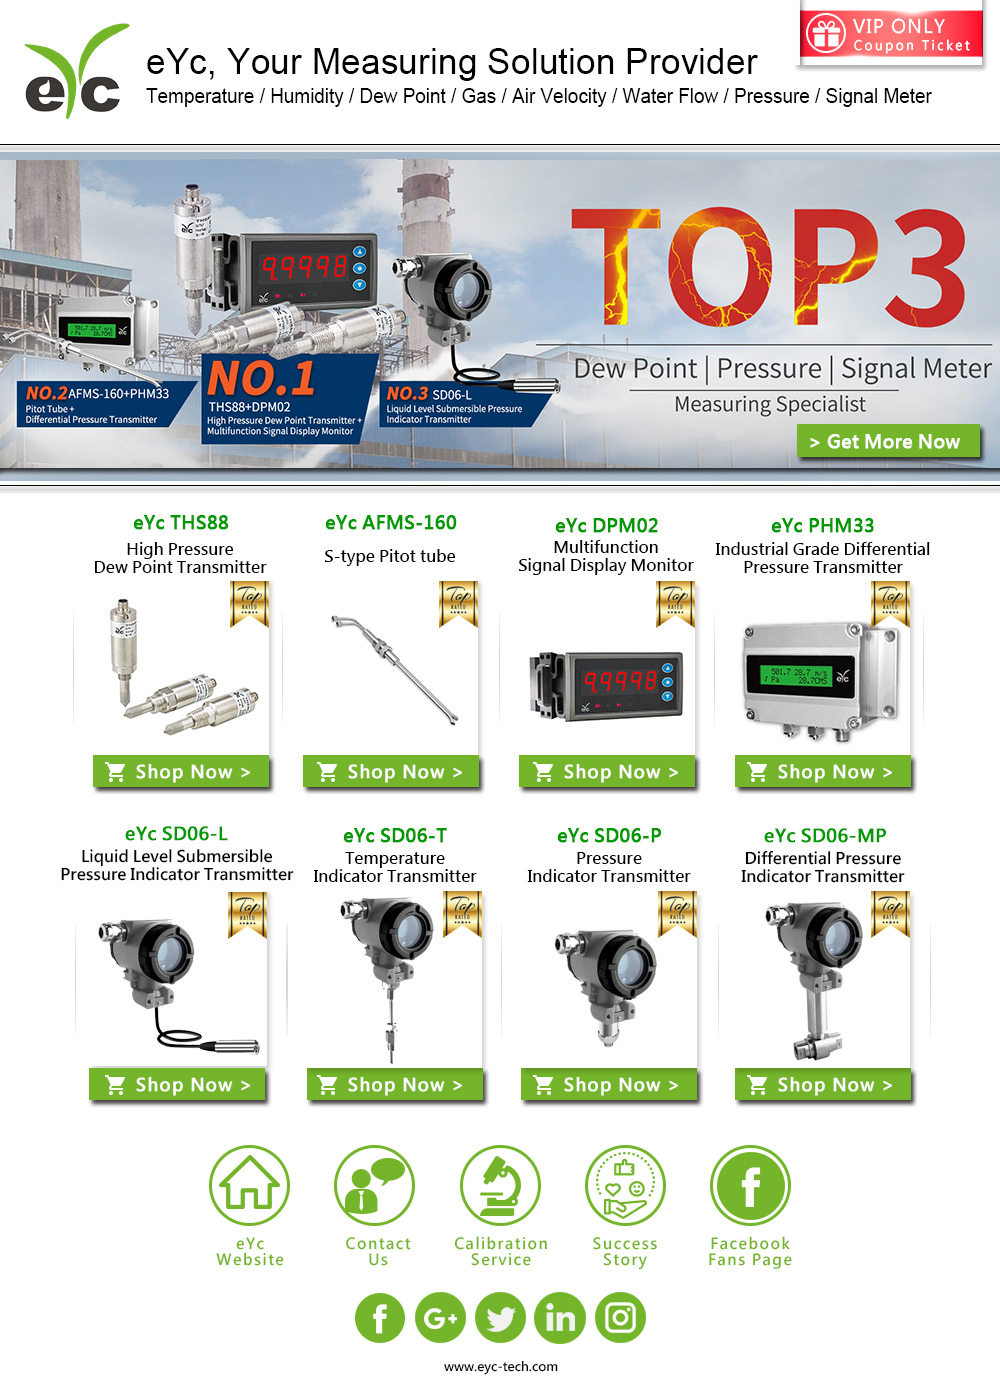 eYc The List Of The Top 3 Hot Selling Measuring Set - Dew Point, Pressure, and Indicator